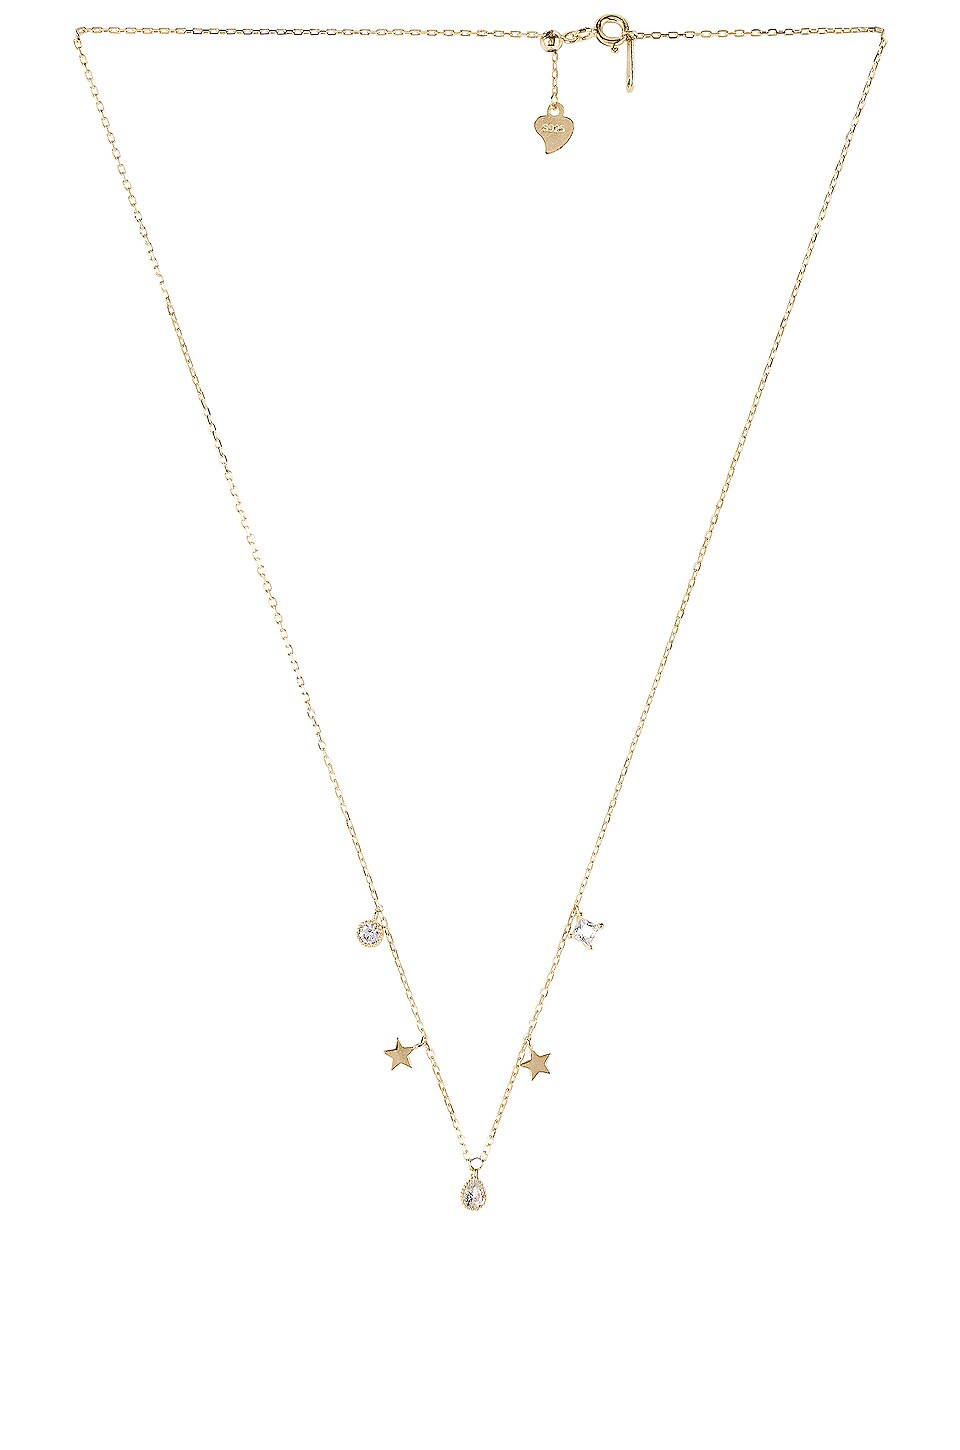 Natalie B Jewelry Celestial Slider Necklace in Gold